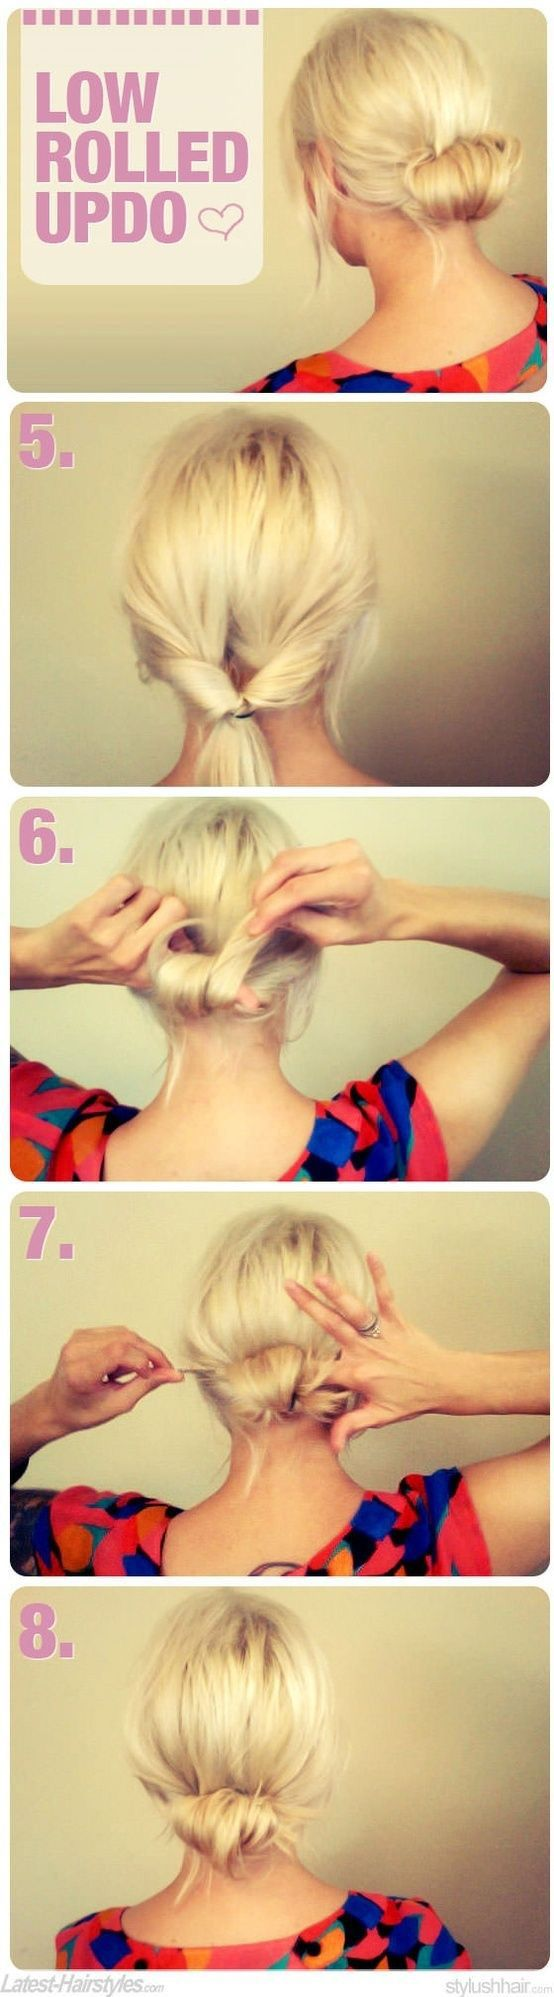 15 Easy No-Heat Hairstyles For Dirty Hair For more please visit: http://www.flyfreshforever.com